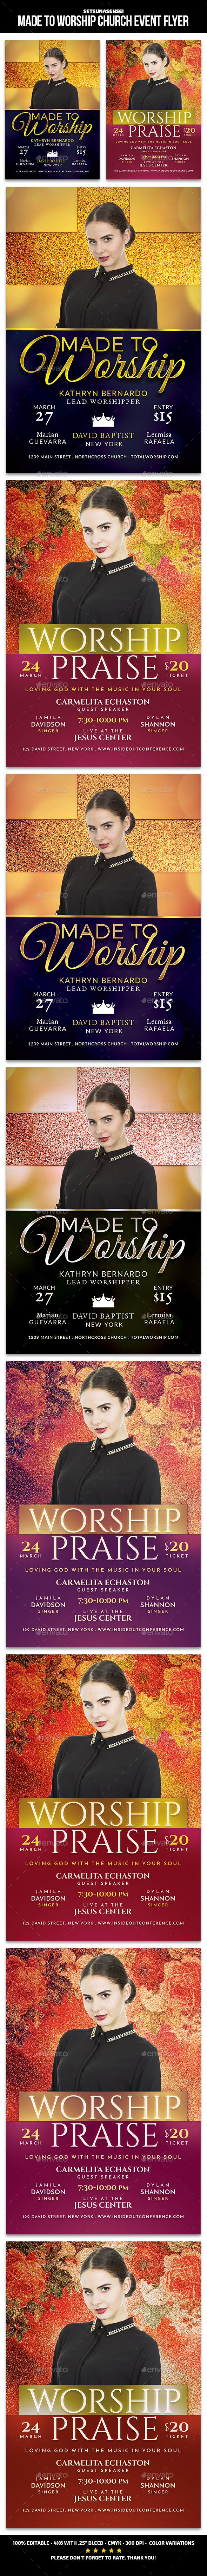 Made to Worship Church Event Flyer - Church Flyers